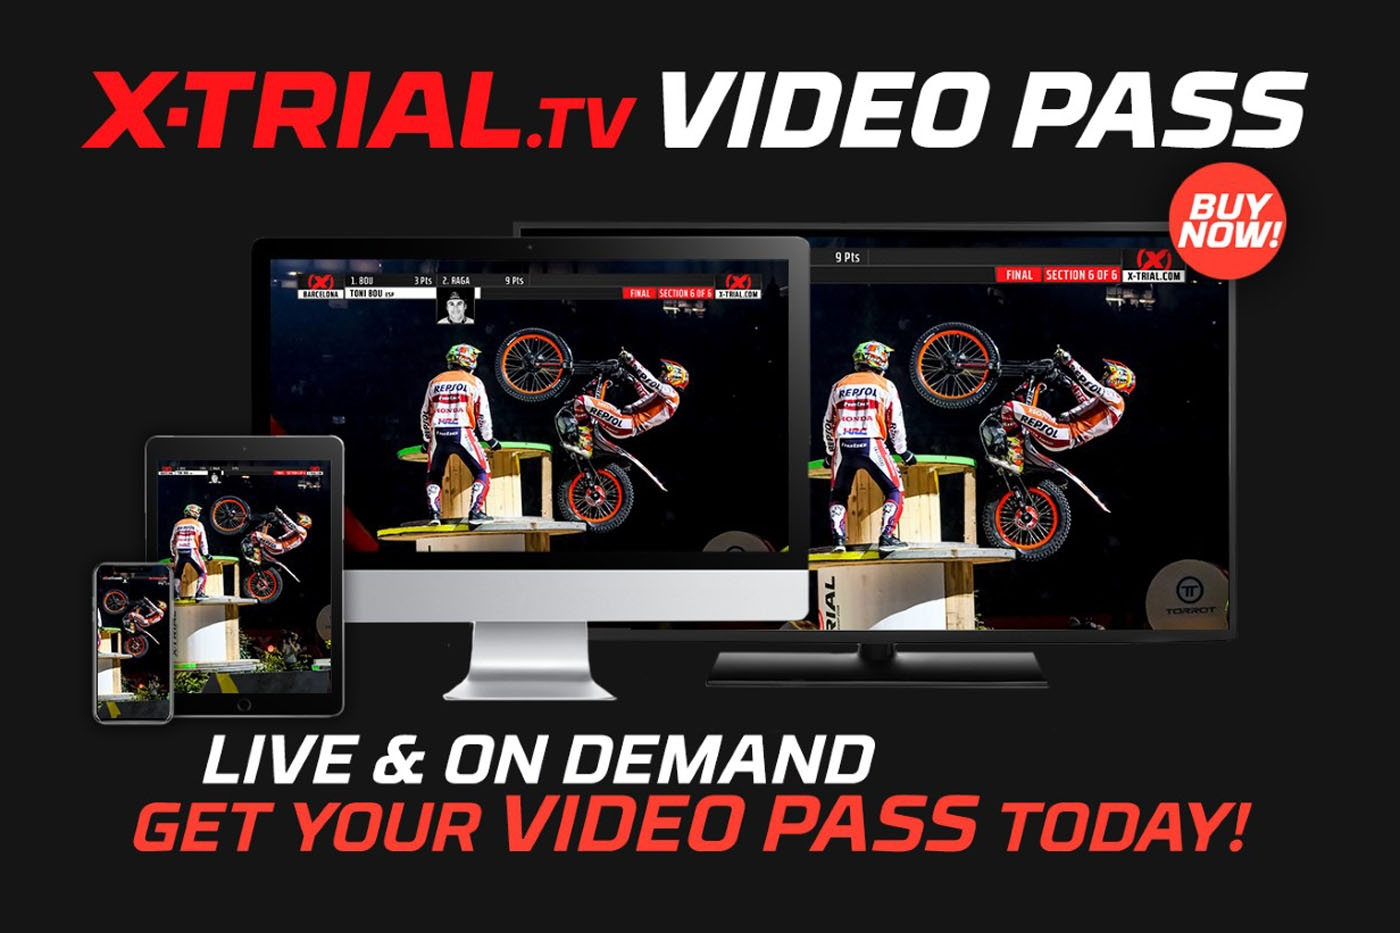 Follow X-Trial live on x-trial.tv